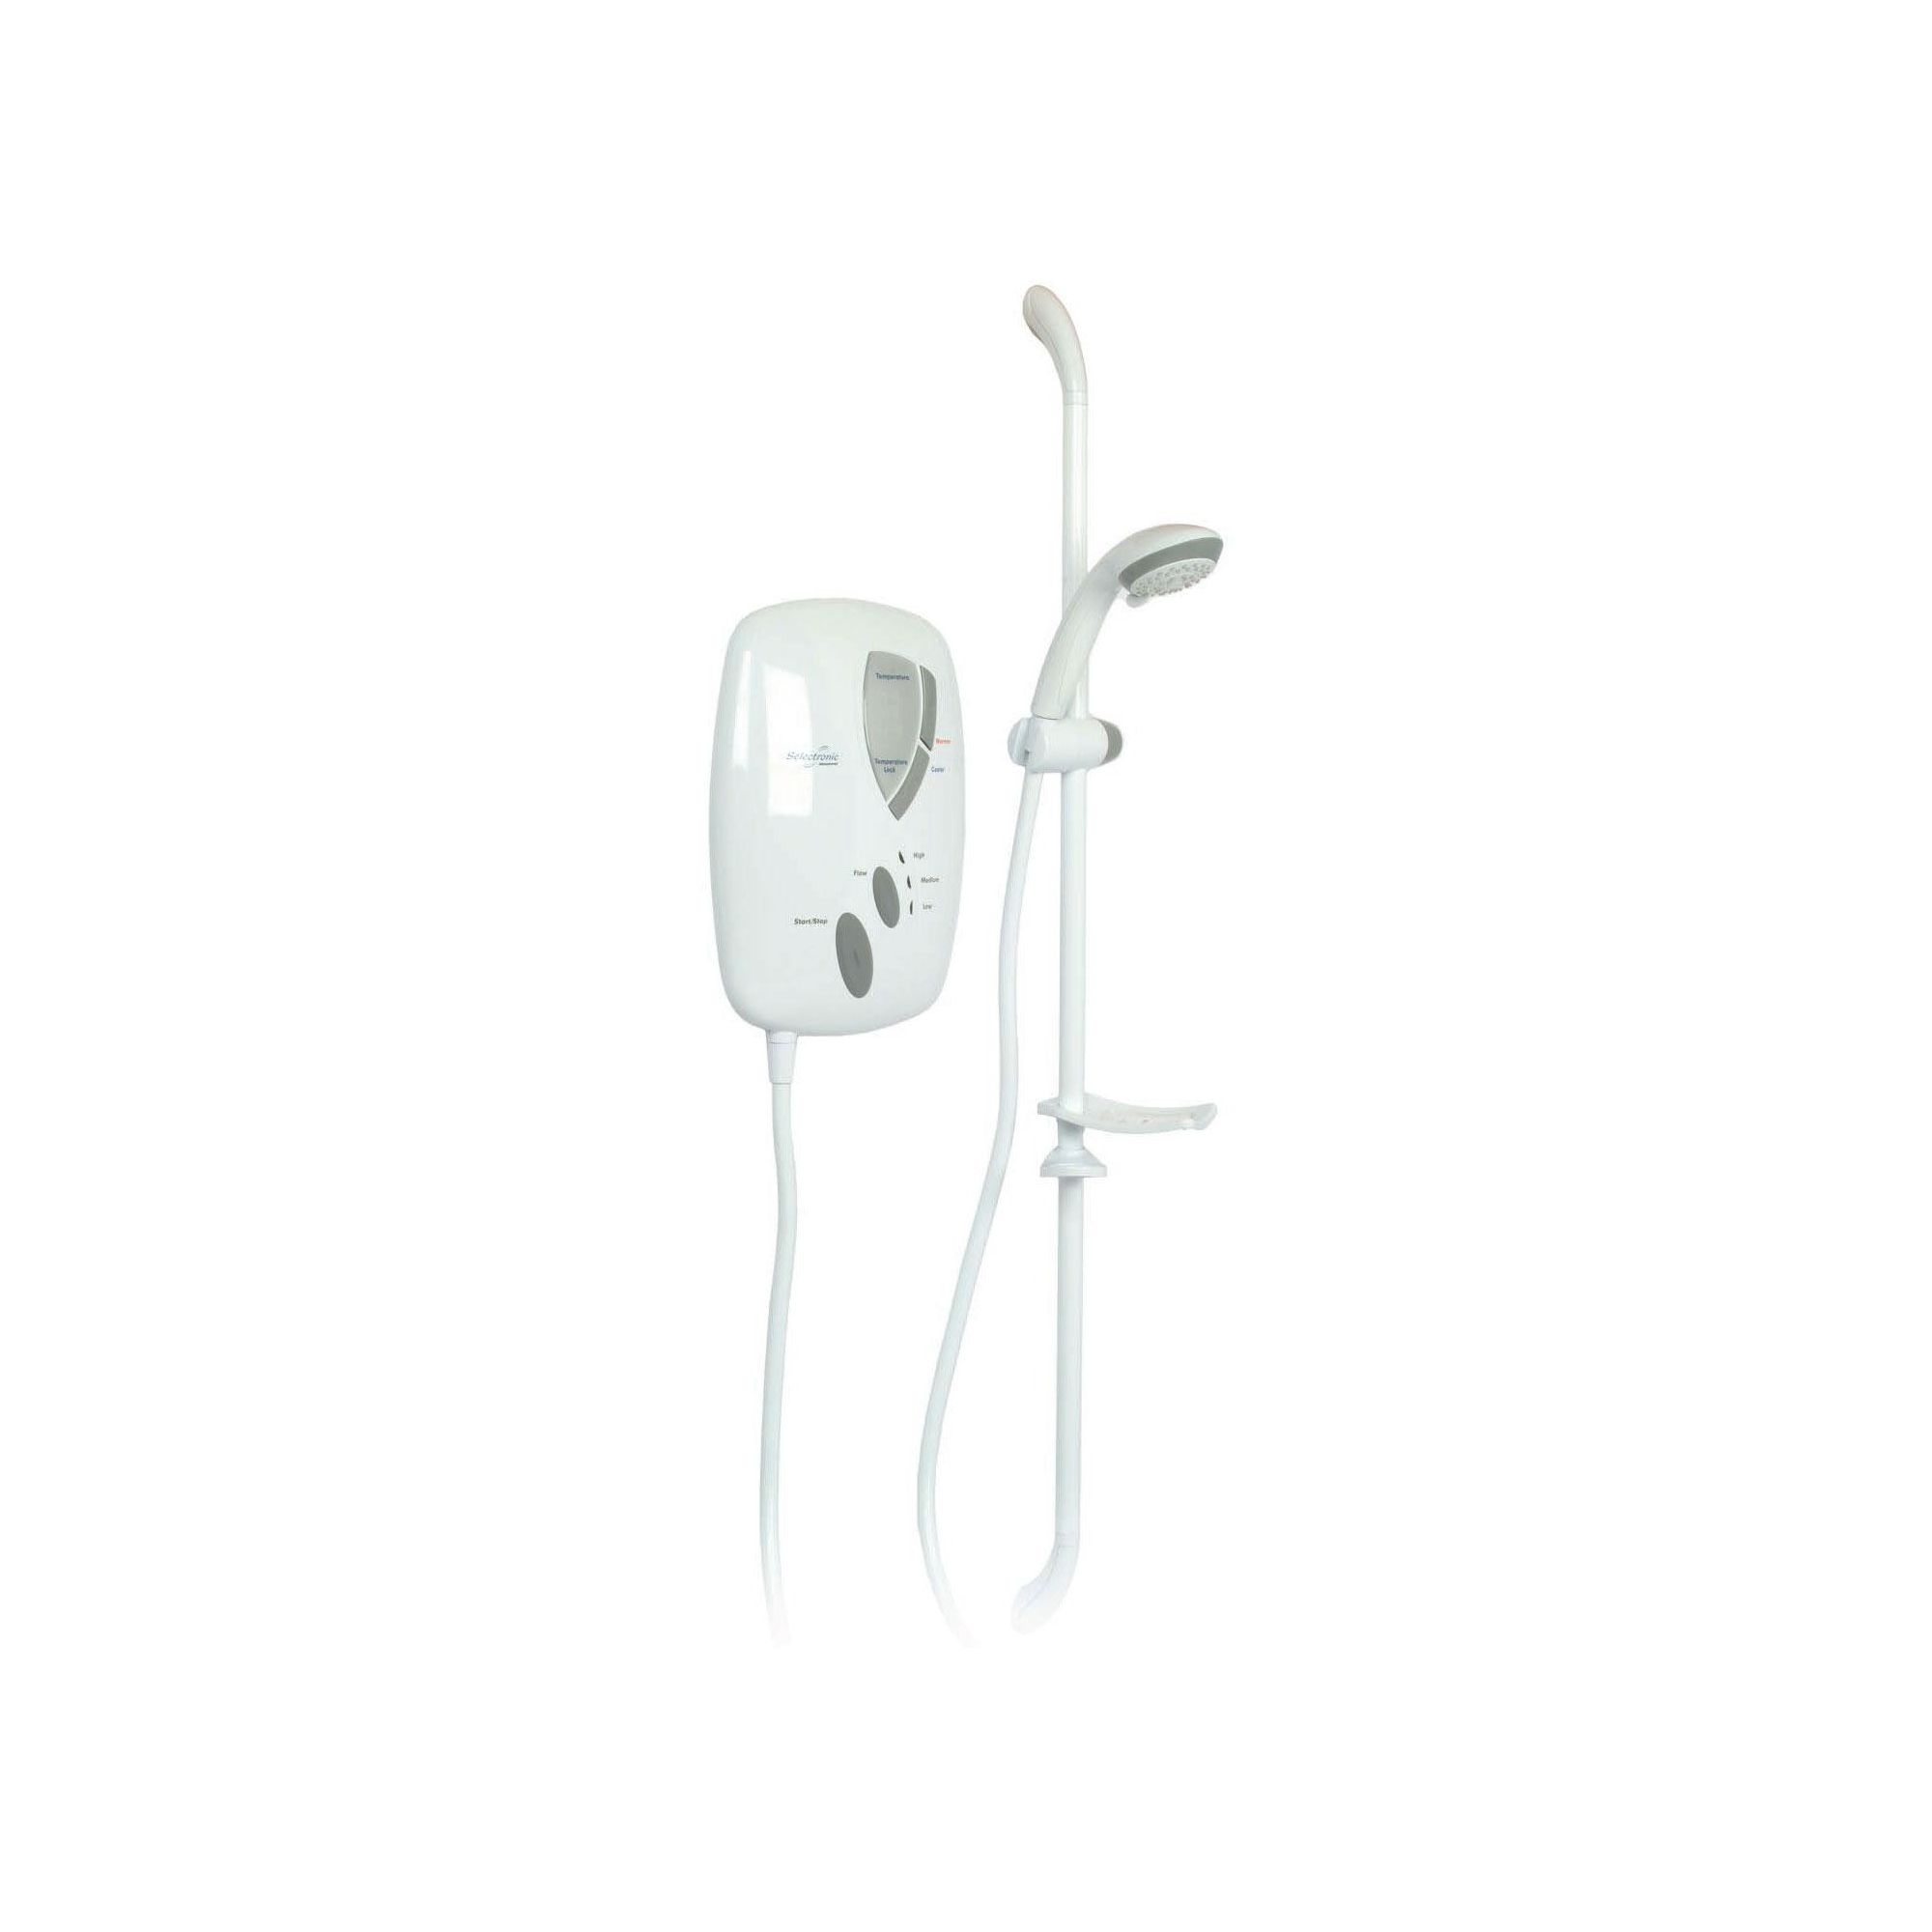 Redring Selectronic Plus 10.8kW Electric Shower at Tesco Direct